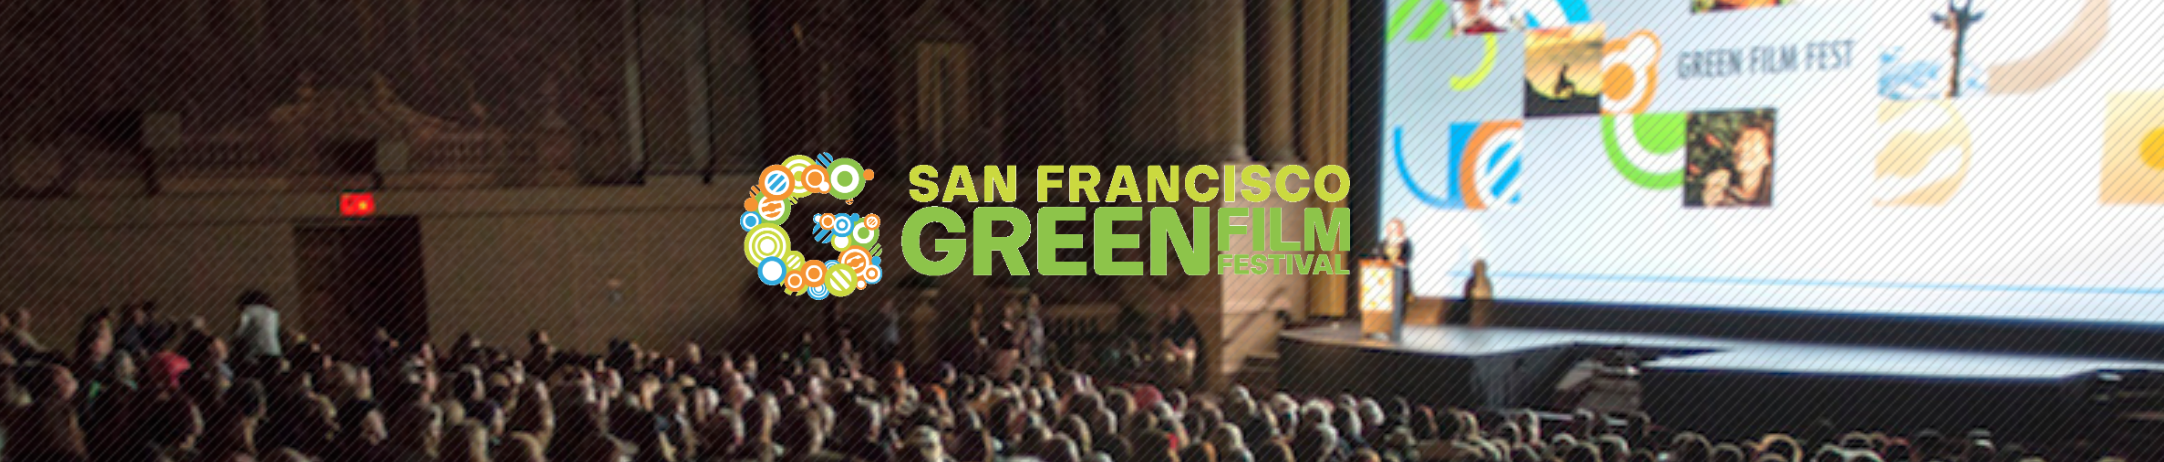 SF Green Film Festival